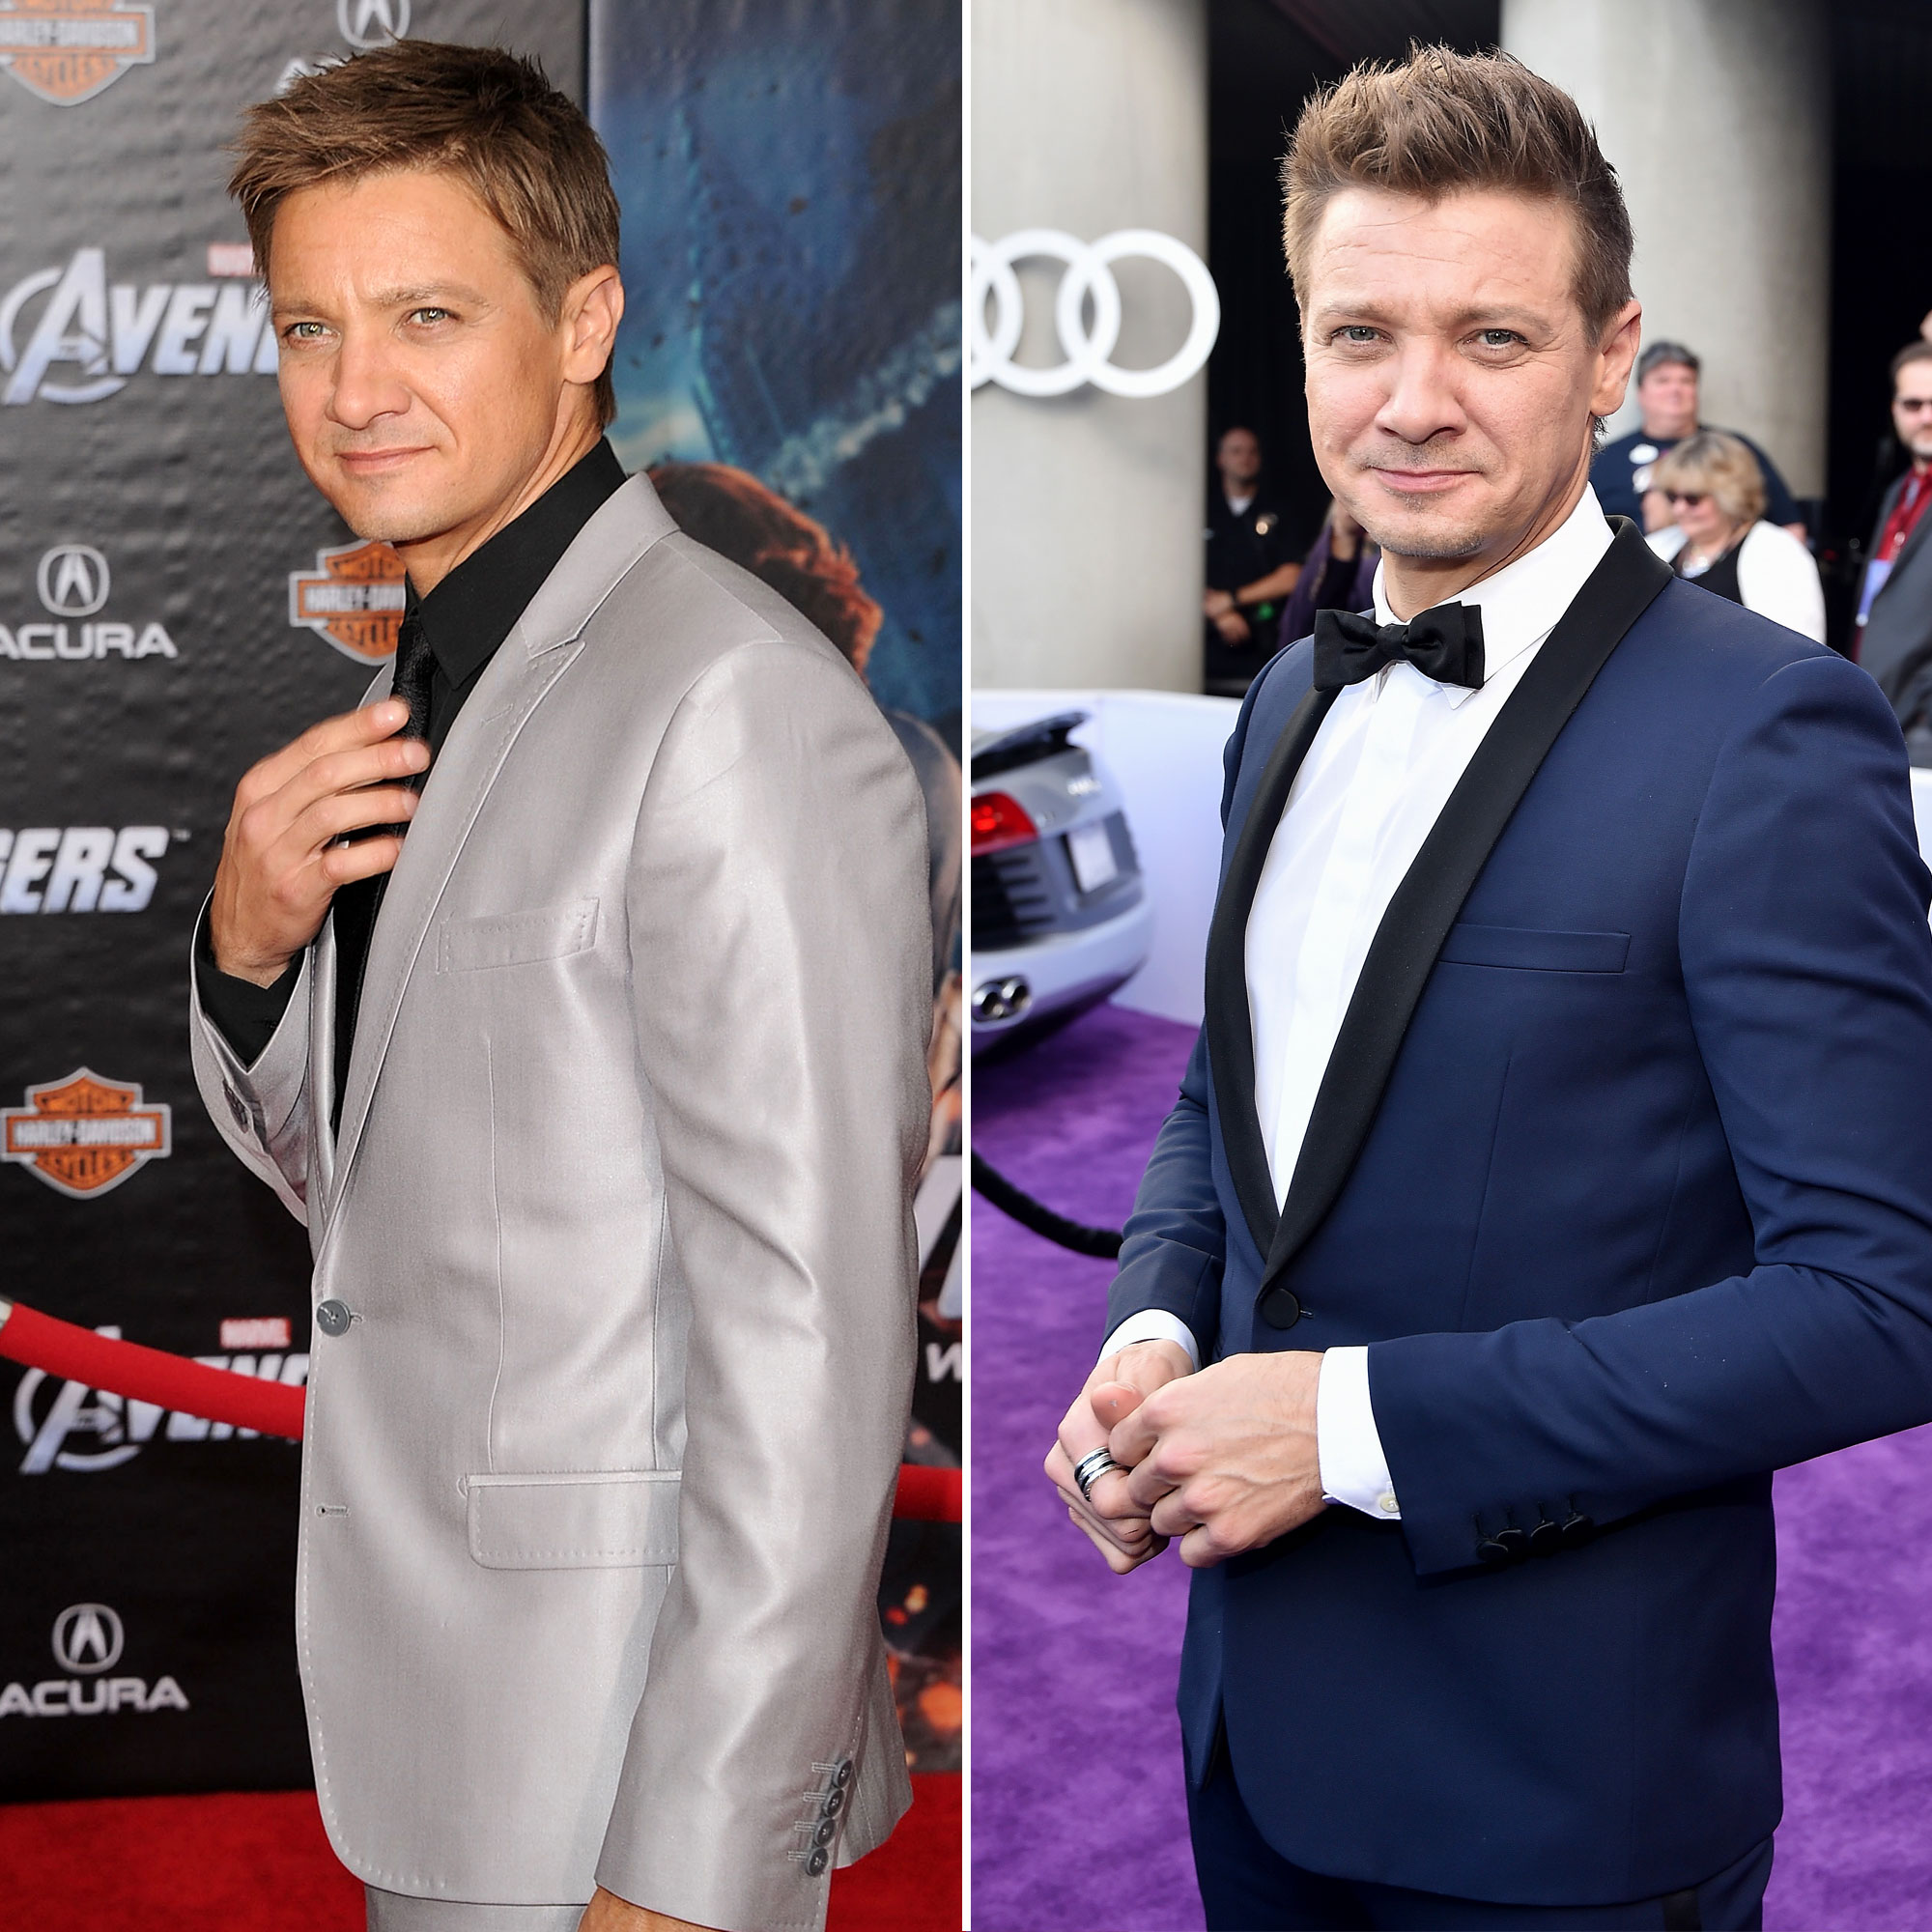 """Jeremy Renner Avengers Premiere First Super Red Carpet to Their Last - The Hurt Locker star took his action scenes next level with Thor as Clint Barton/Hawkeye, and again when he reprised the role in 2012's The Avengers , for which he walked the carpet in a metallic suit jacket. Renner , who now sports a slightly longer due, more than hit his style """"mark"""" at the Endgame premiere, looking dapper as could be in a navy suit jacket and a black bowtie."""